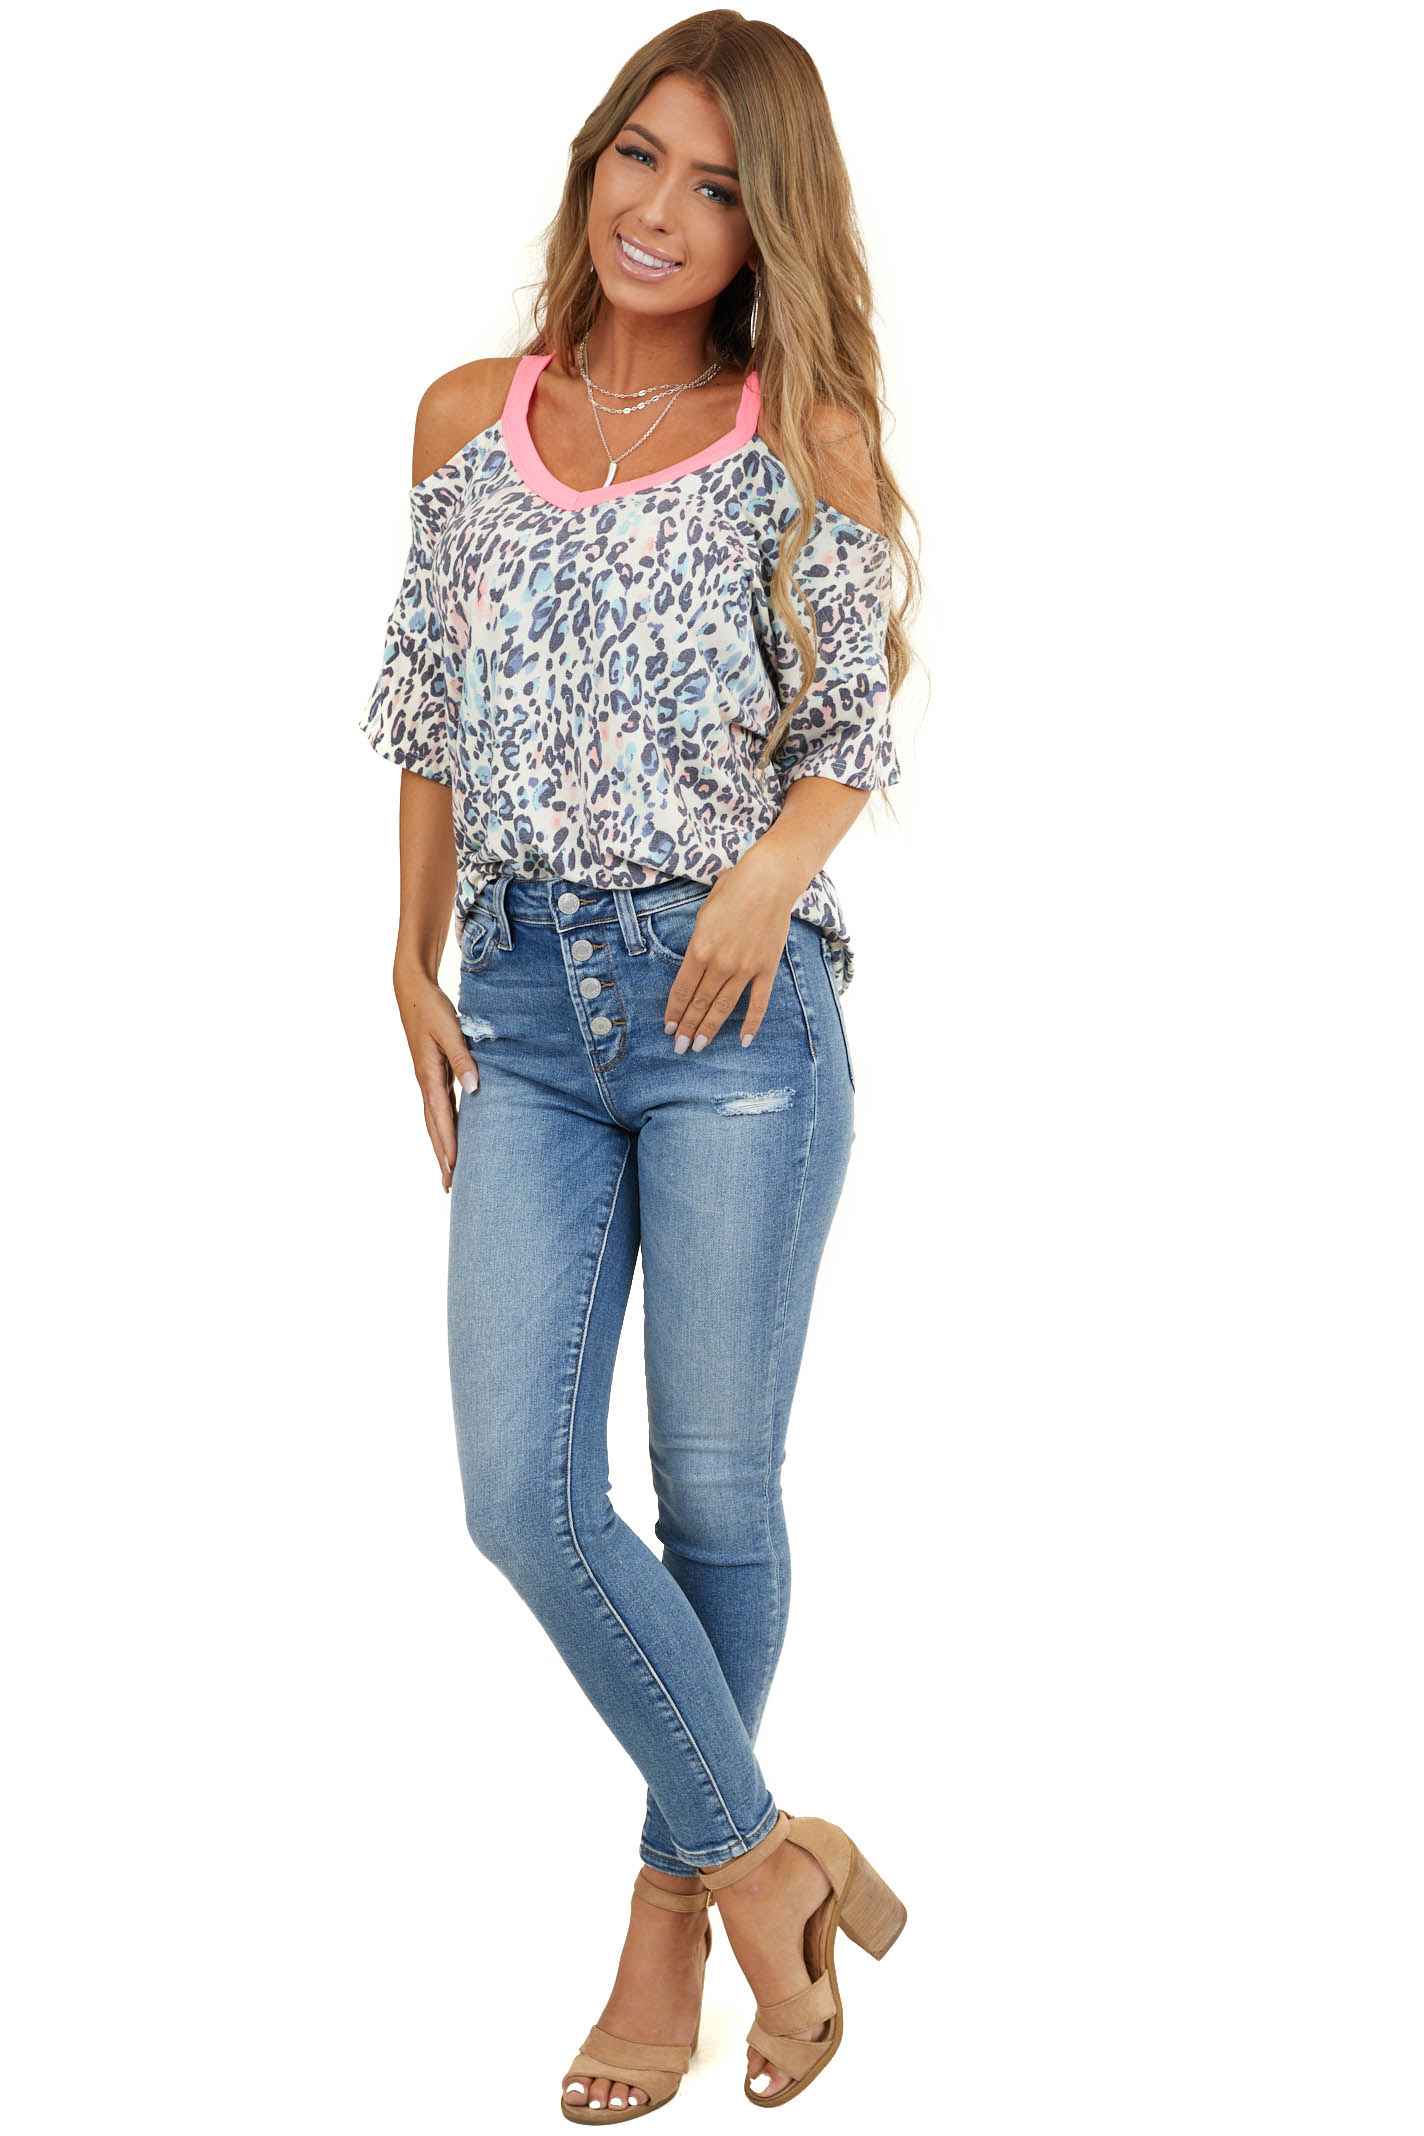 Cream Leopard Cold Shoulder Top with Hot Pink Trim Contrast